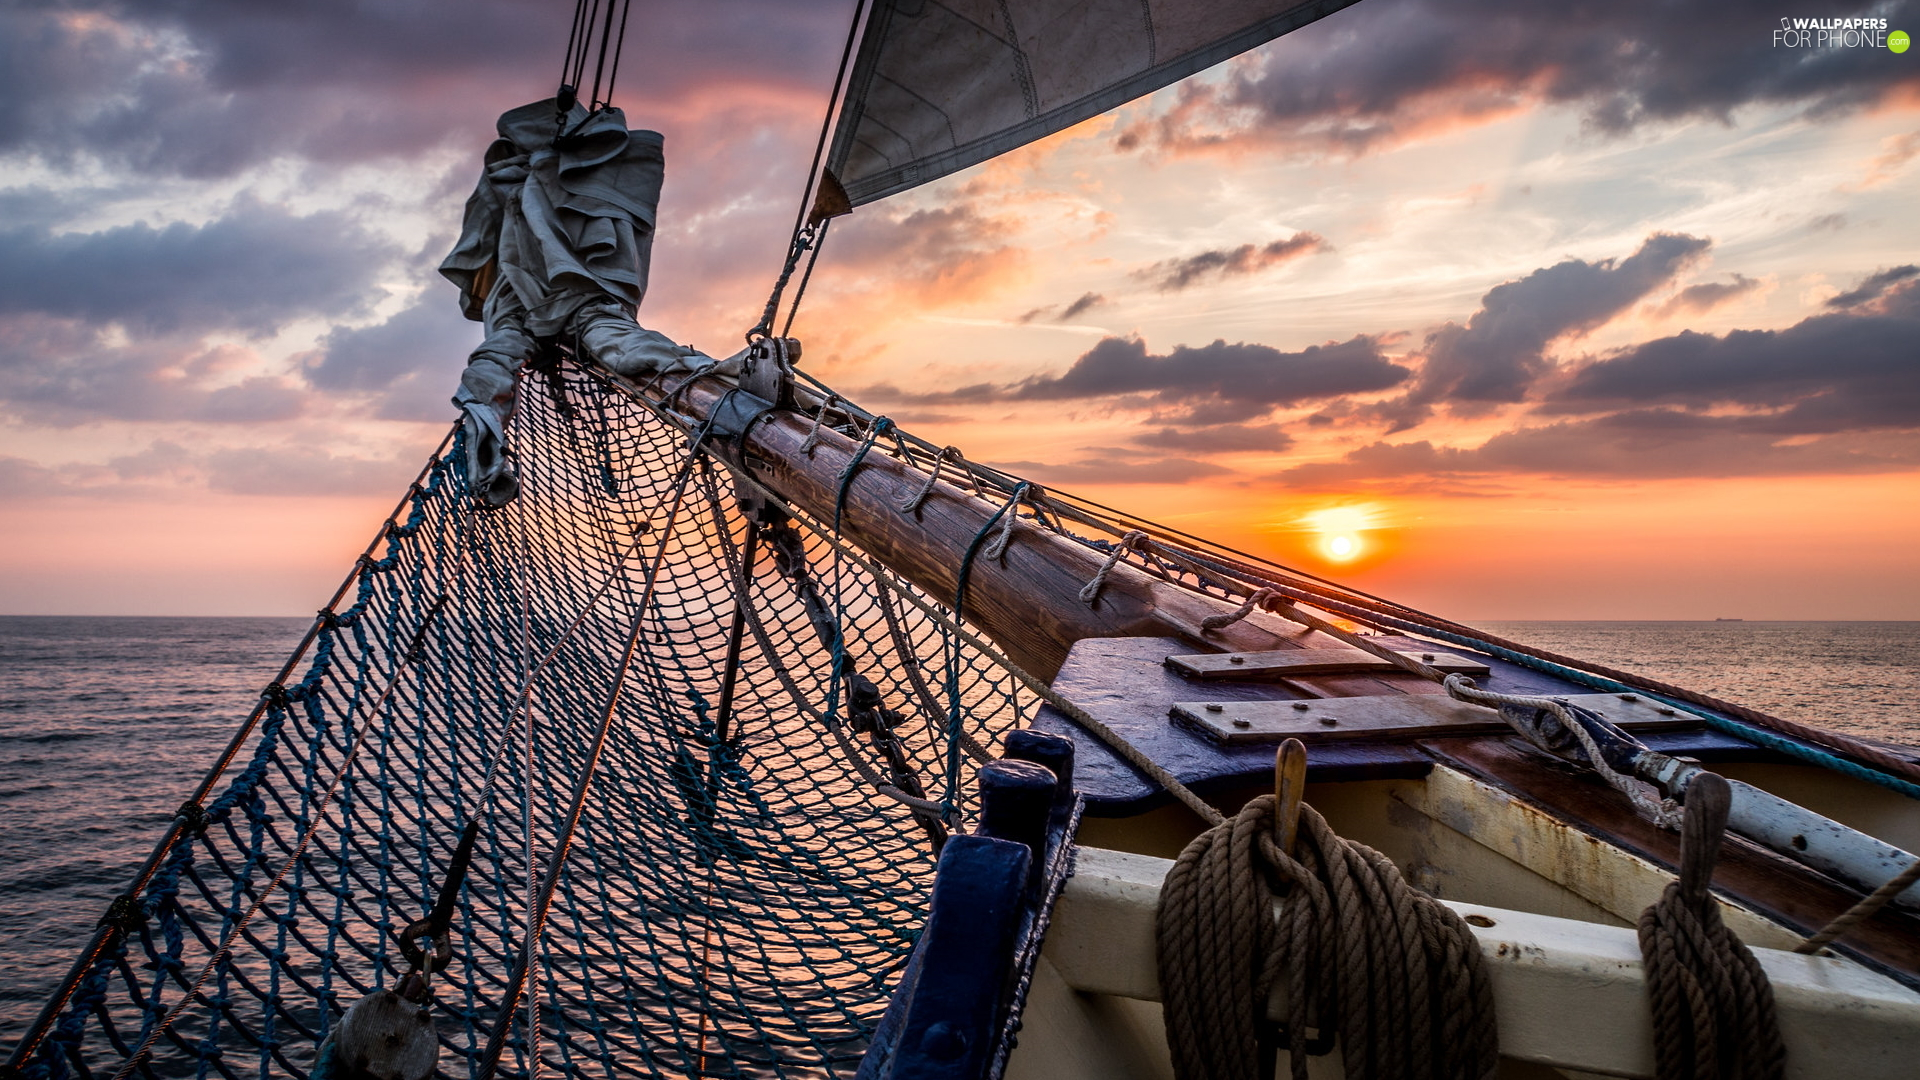 sea, Great Sunsets, net, sail, Ship